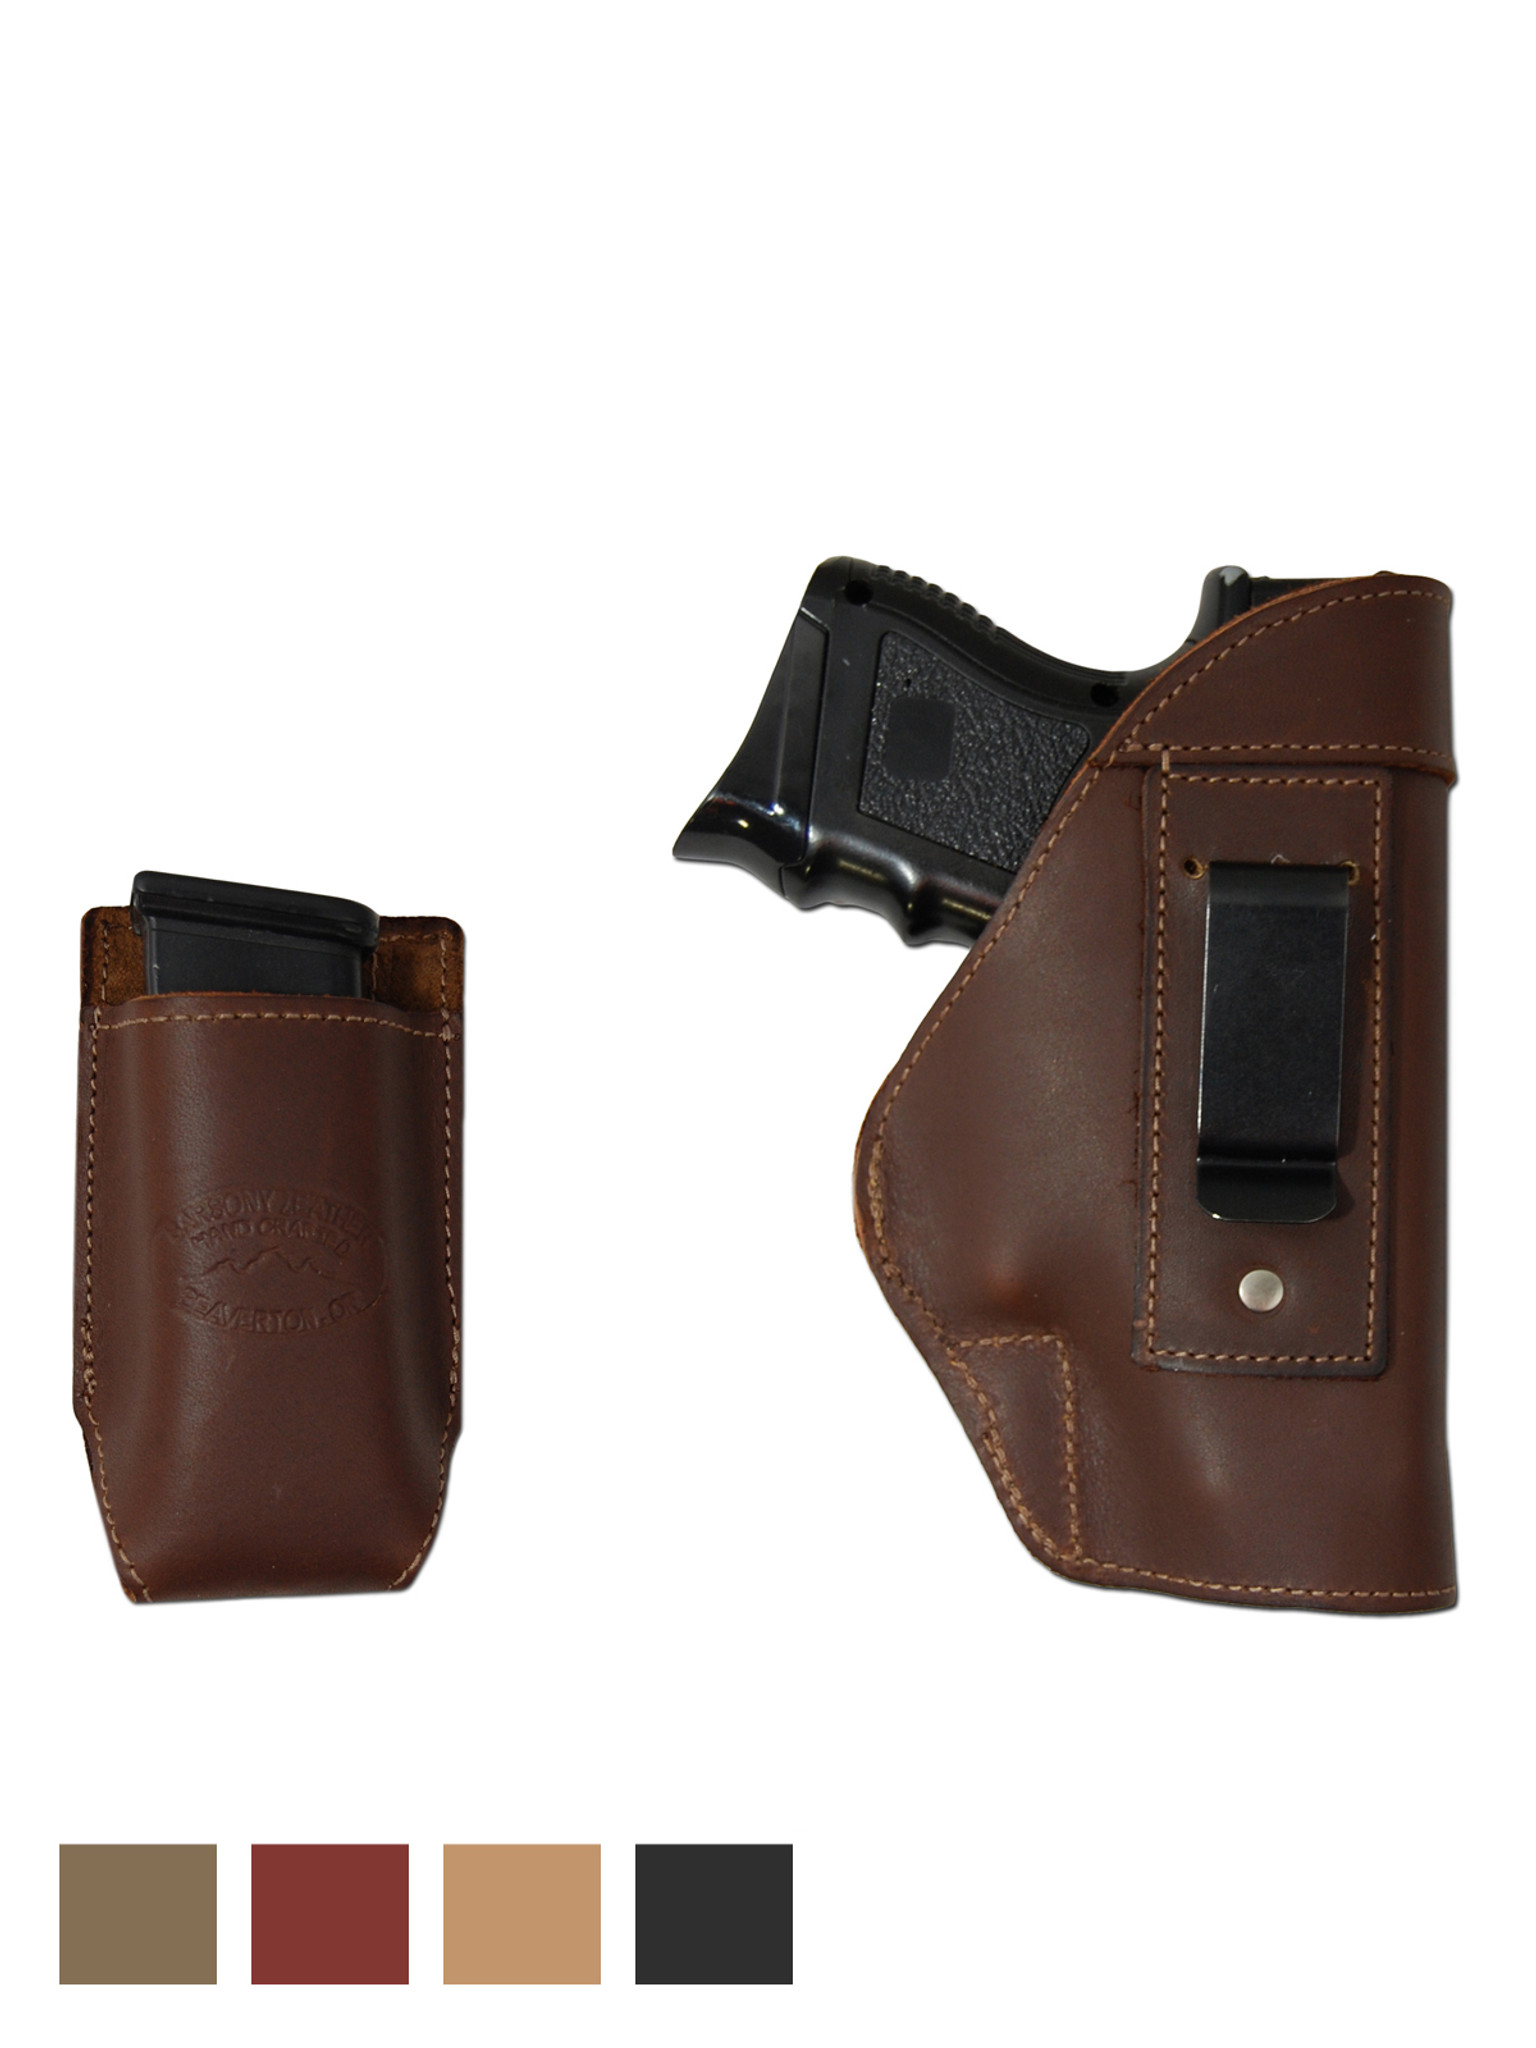 Leather Inside the Waistband Holster + Single Magazine Pouch